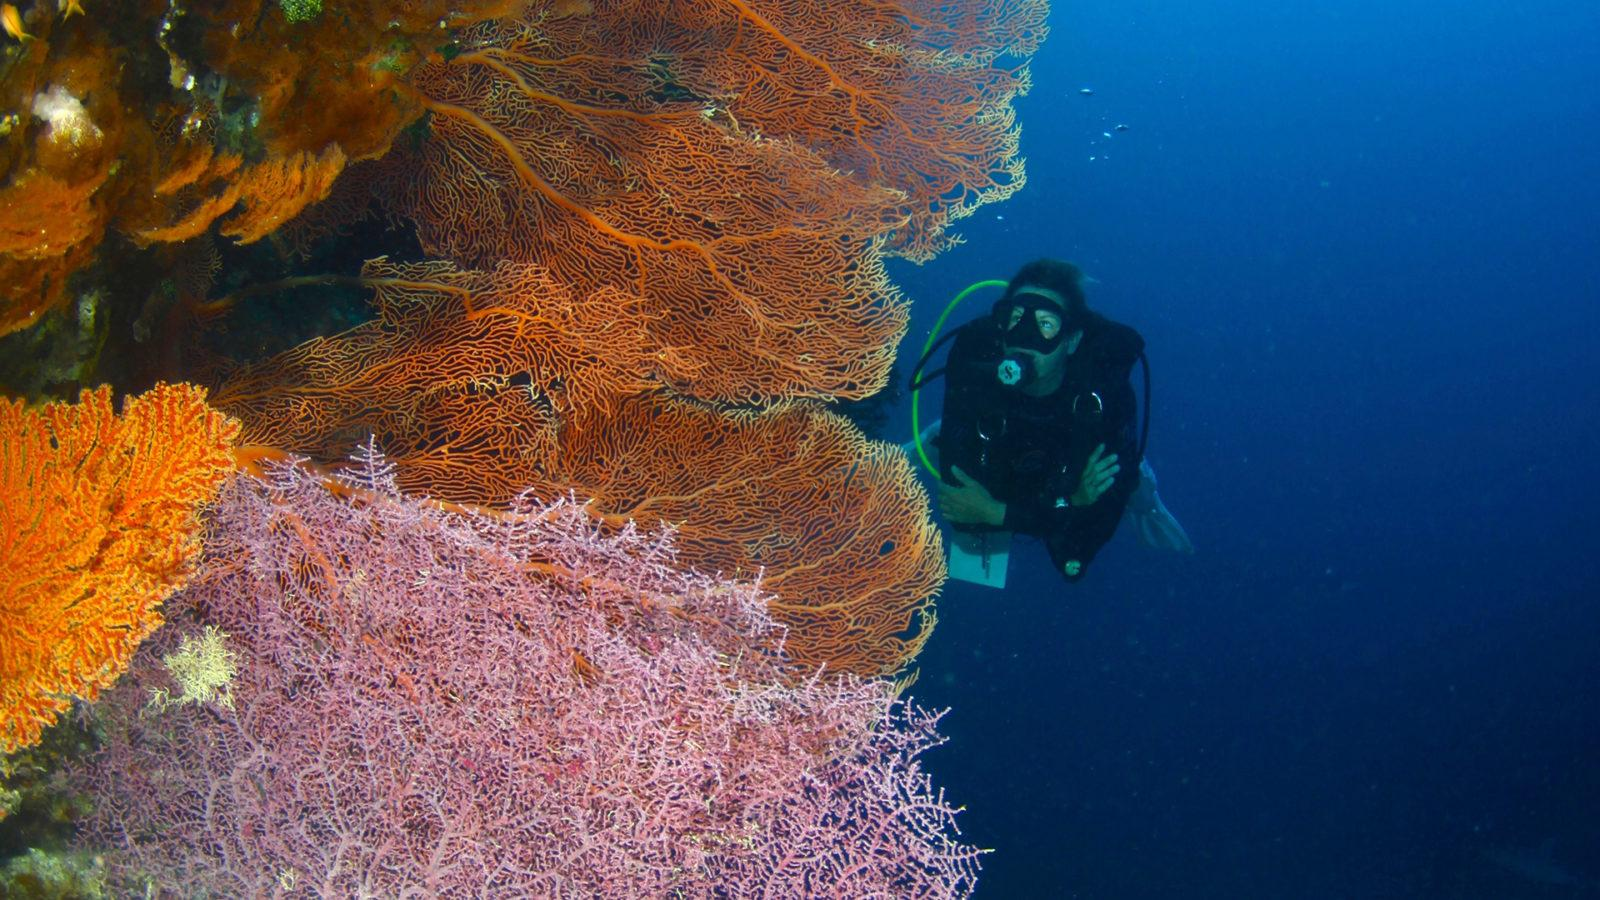 Scuba Diving along a Soft Coral Wall by Divers Den